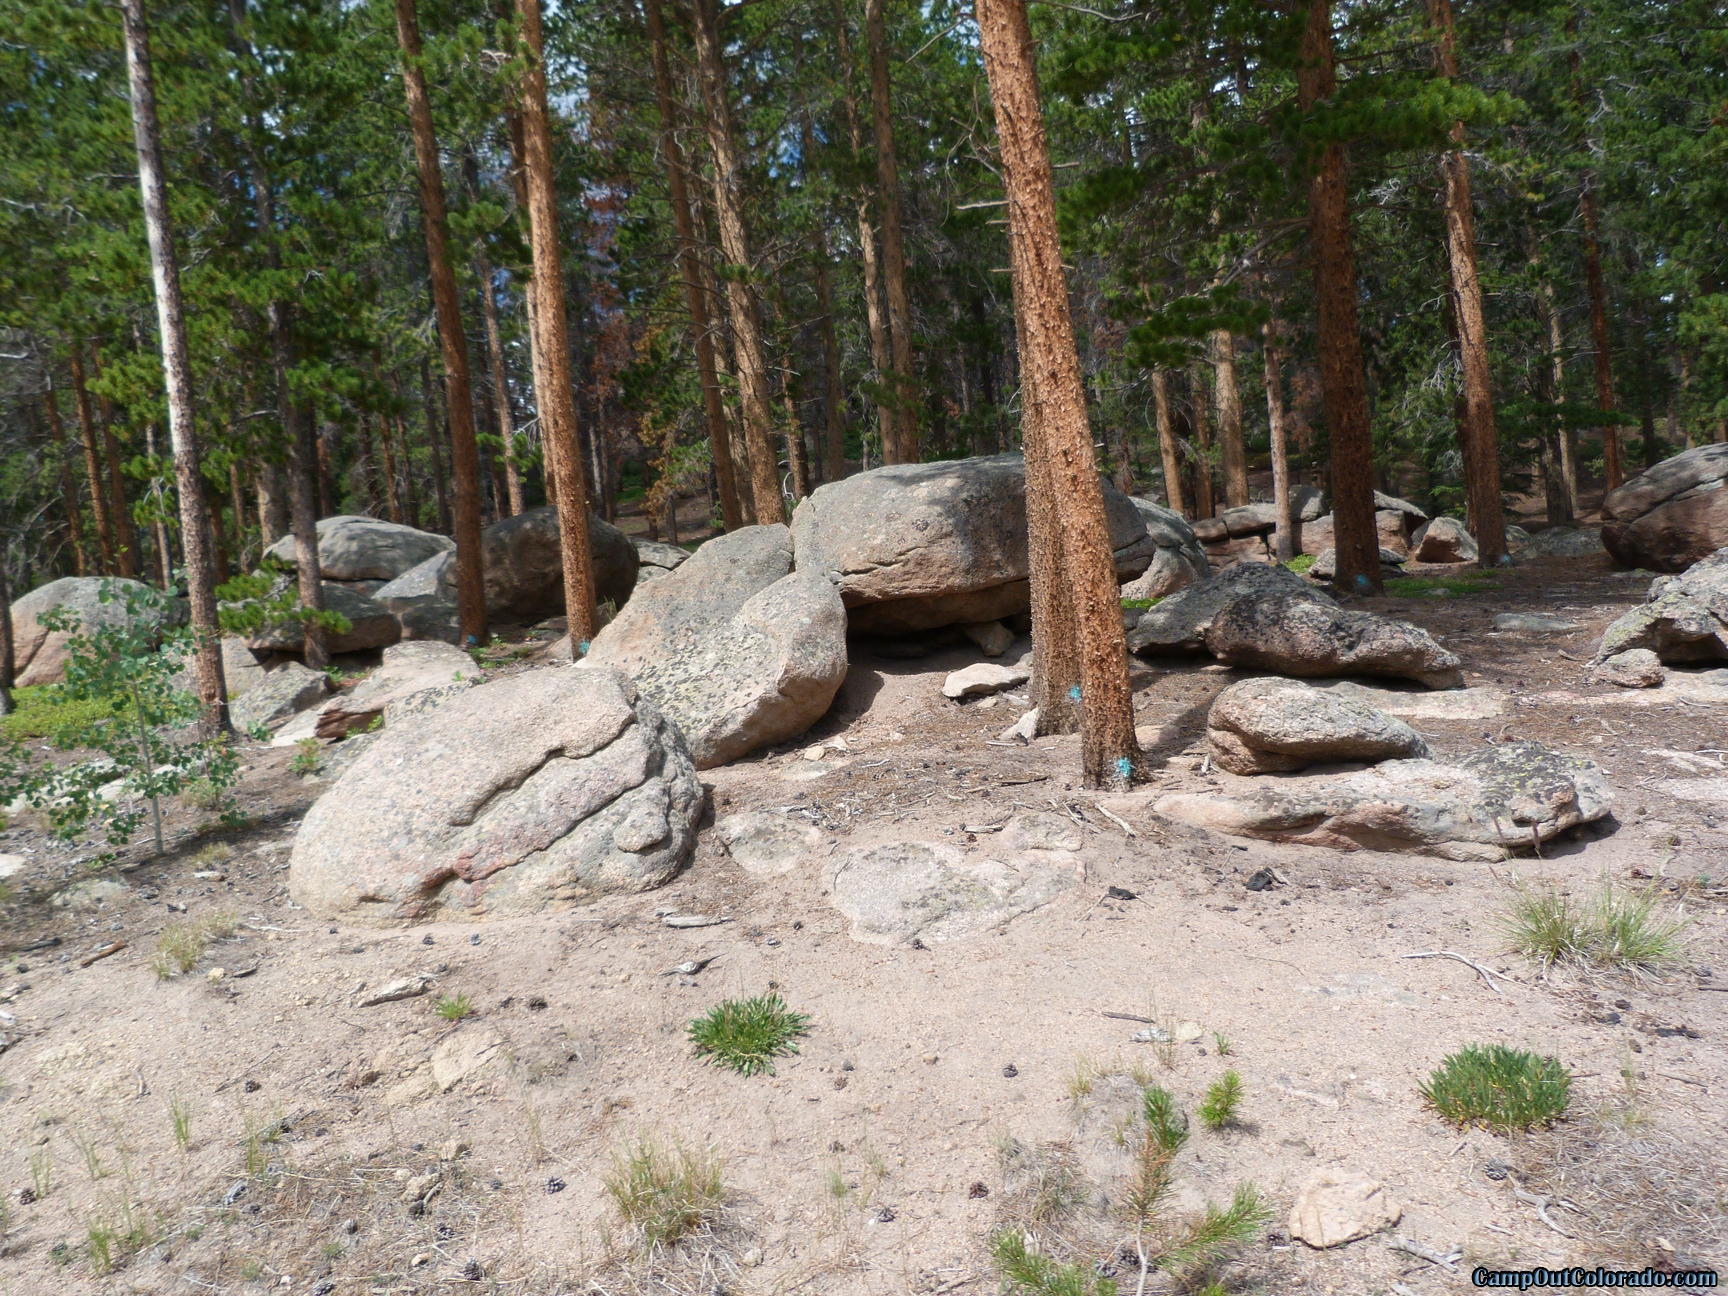 camp-out-colorado-bellaire-lake-chipmunk-home